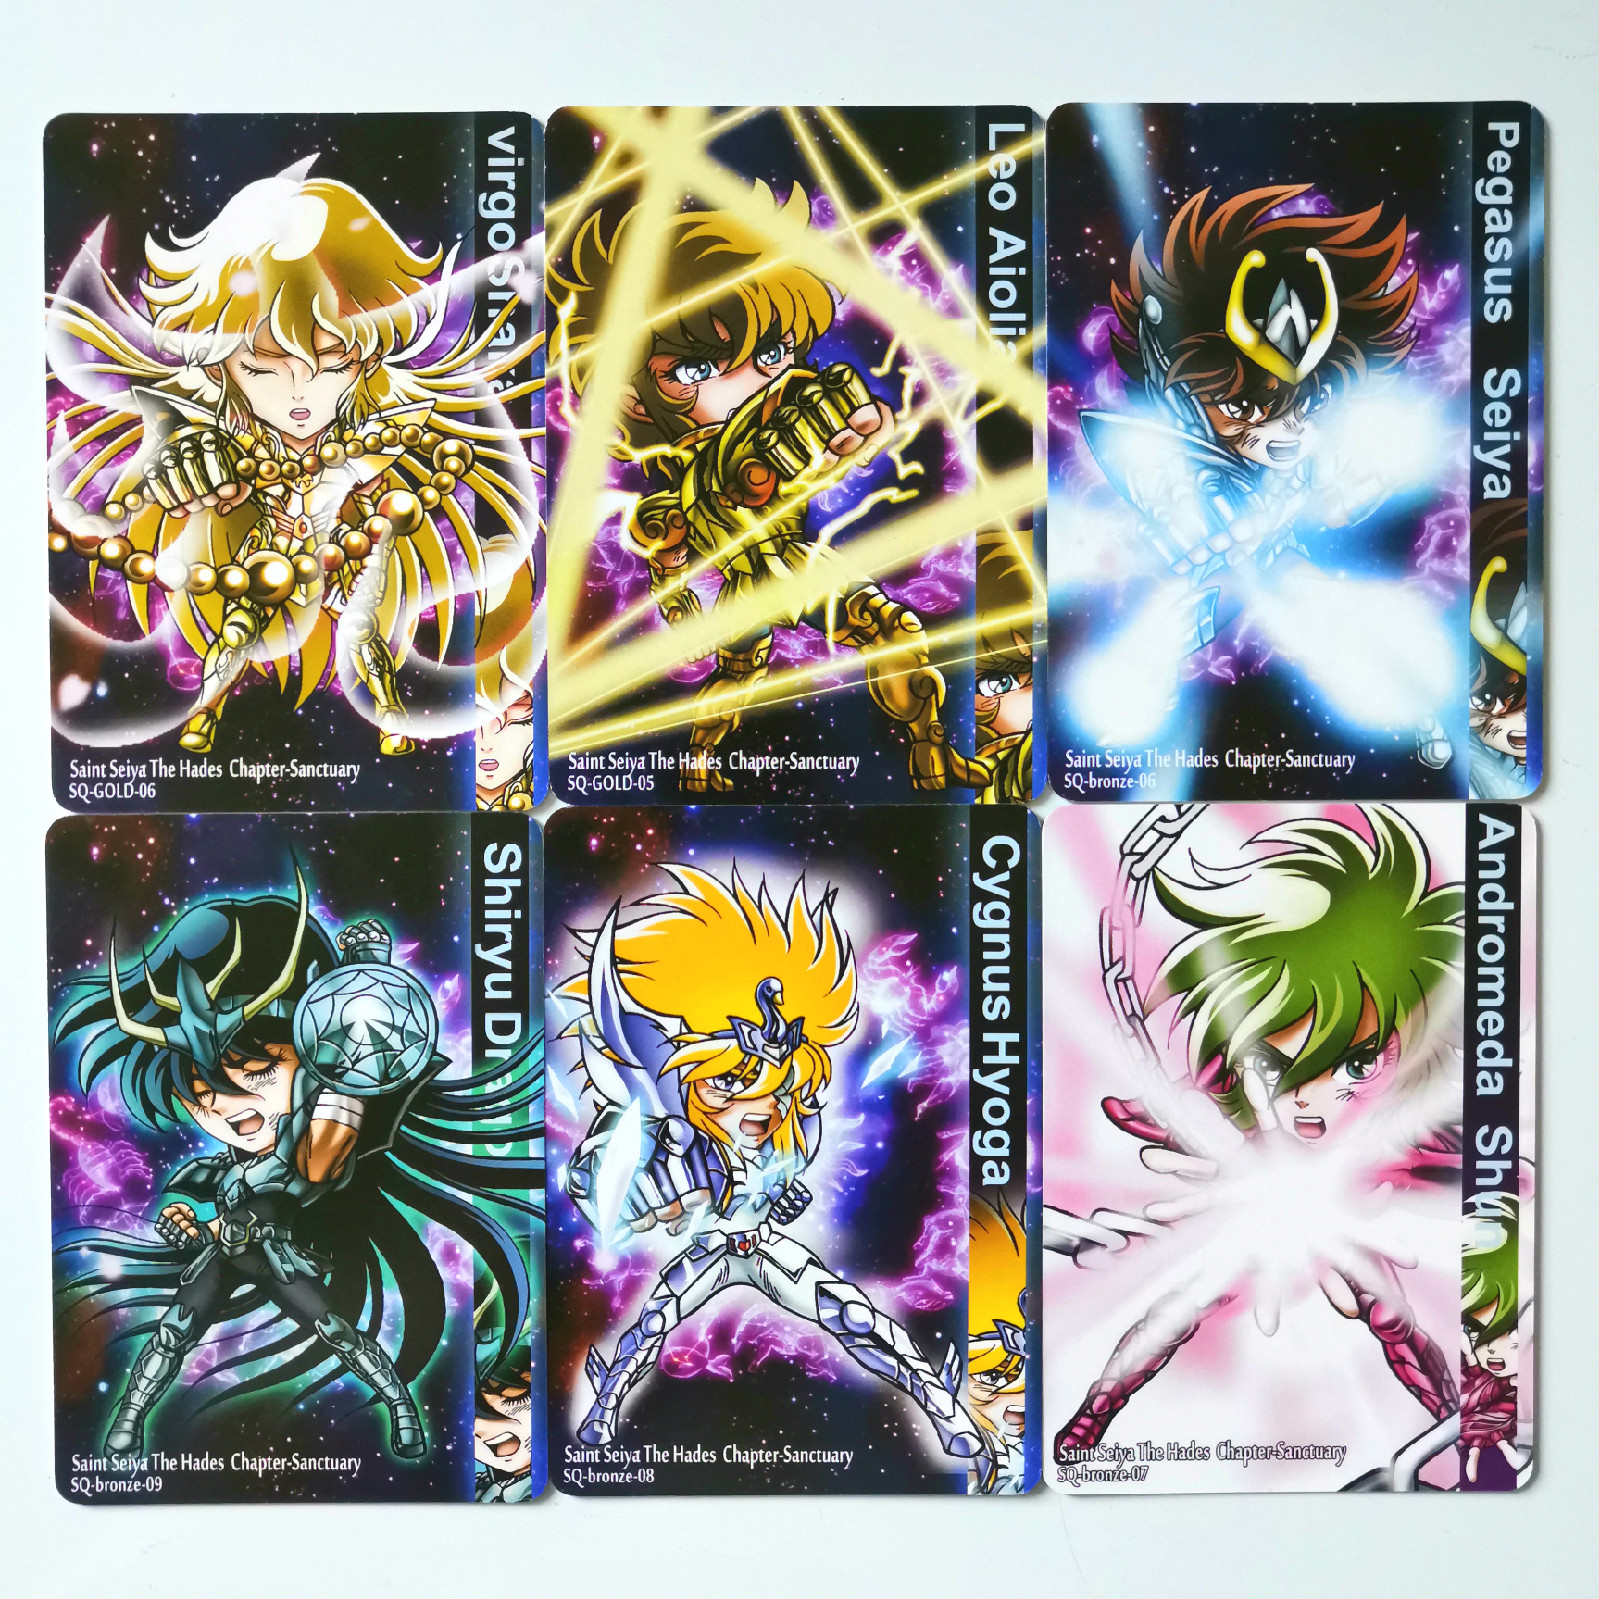 46pcs/set Saint Seiya Toys Hobbies Hobby Collectibles Game Collection Anime Cards